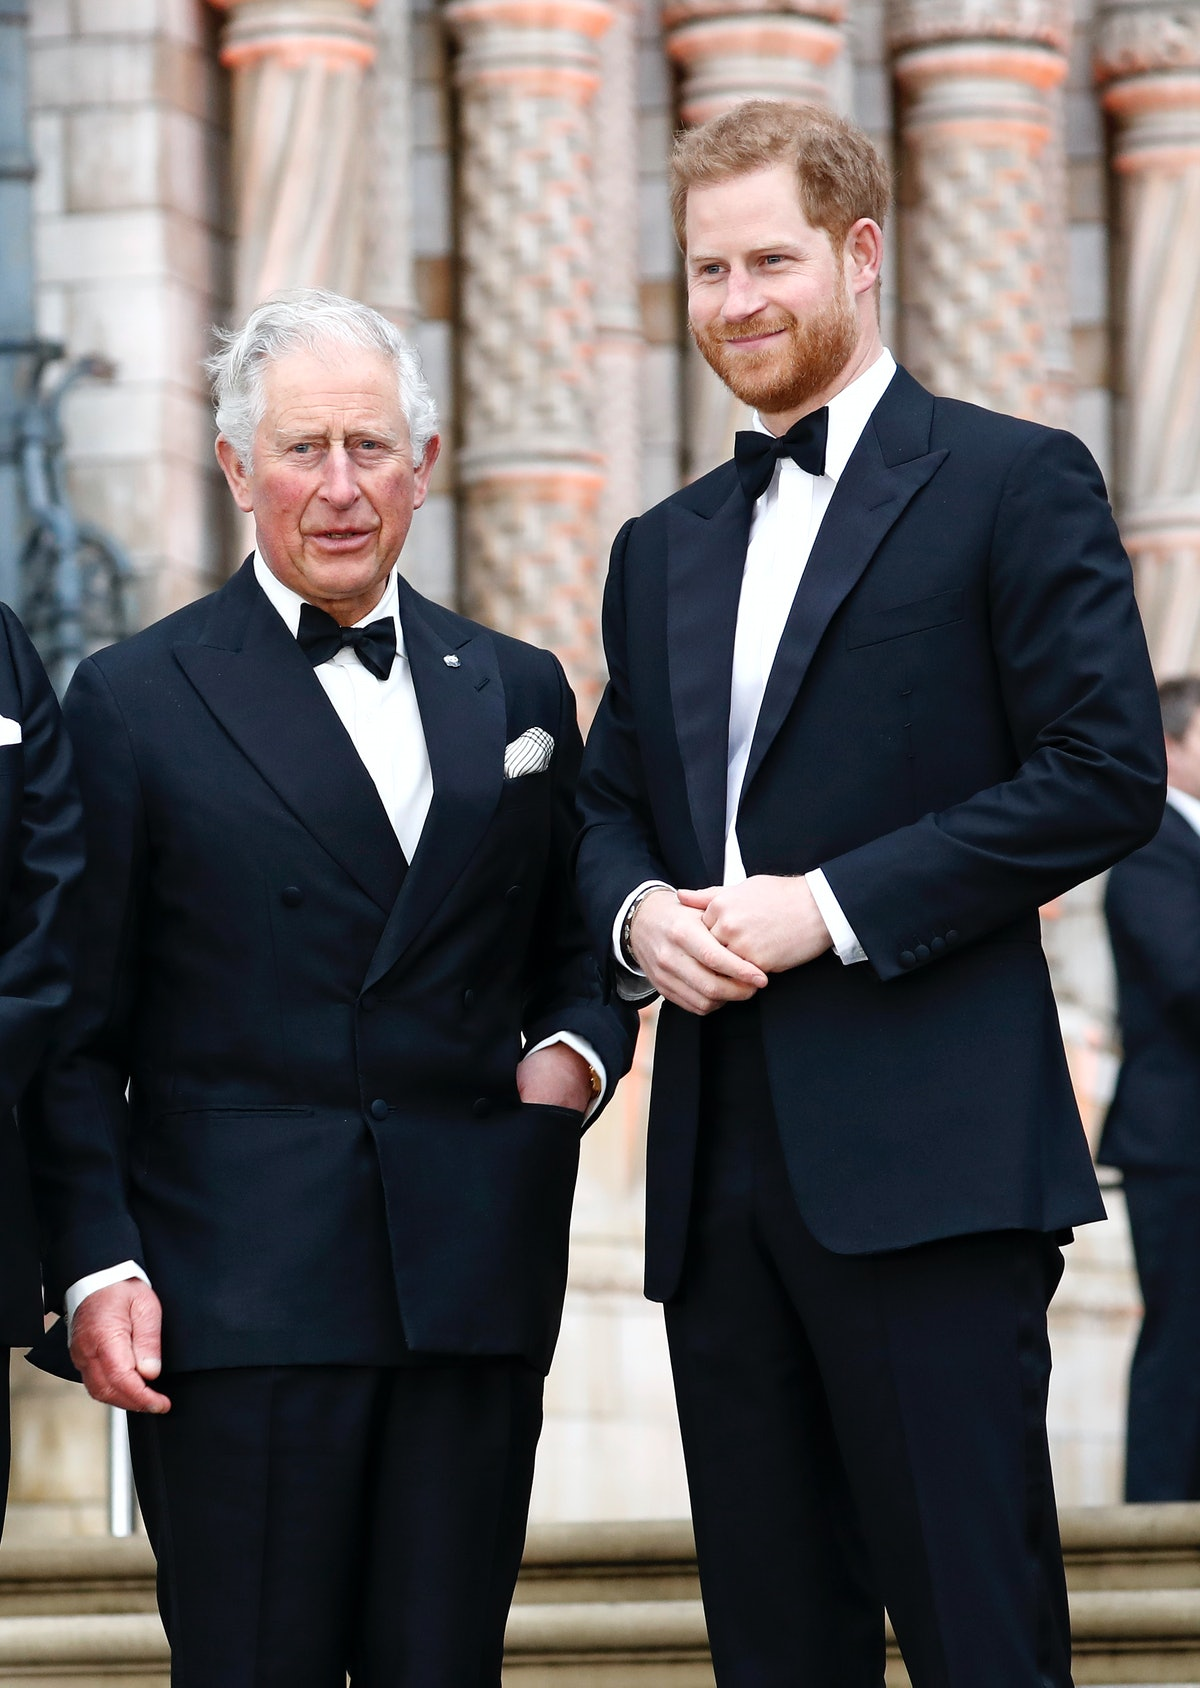 """LONDON, ENGLAND - APRIL 04: Prince Charles, Prince of Wales and Prince Harry, Duke of Sussex attend the """"Our Planet"""" global premiere the at the Natural History Museum on April 04, 2019 in London, England. (Photo by John Phillips/Getty Images)"""